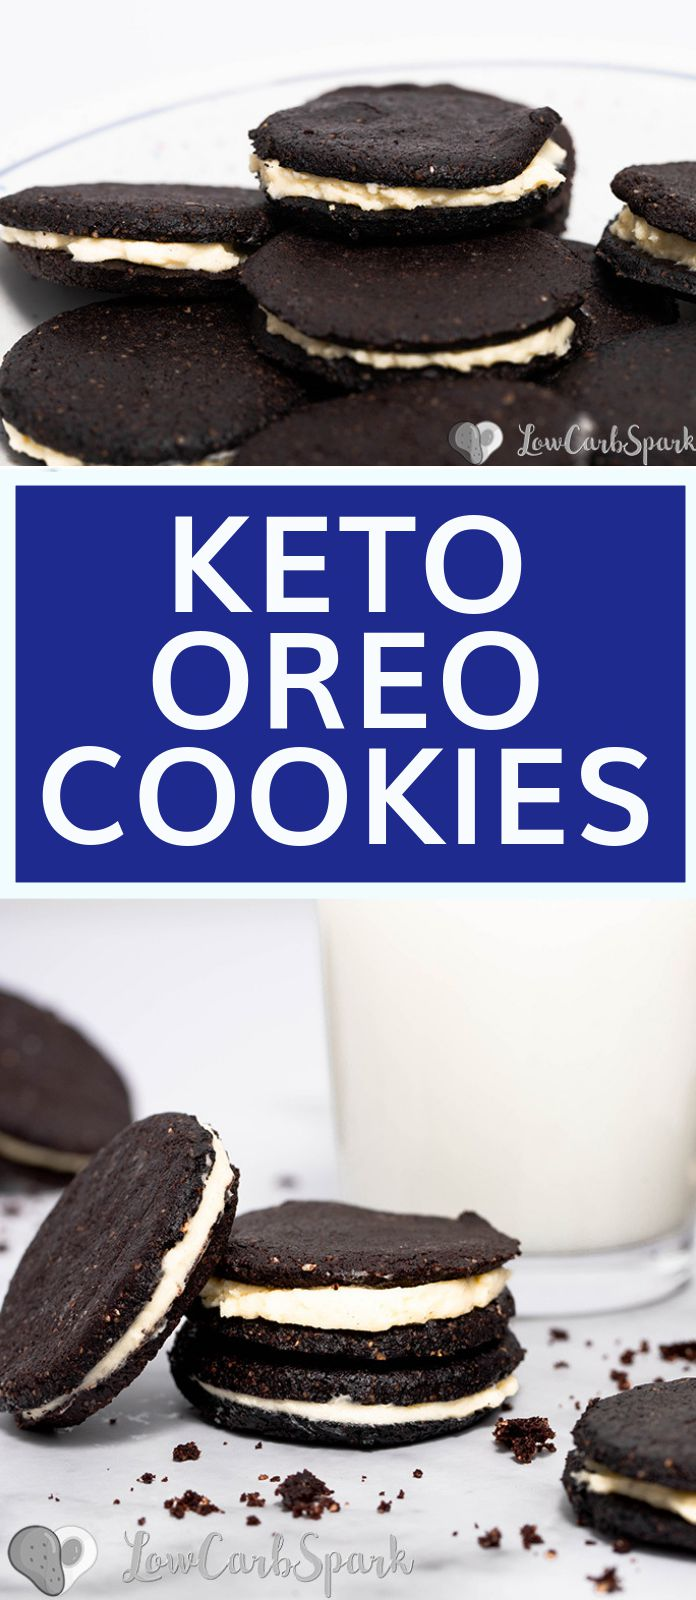 These keto oreo cookies are just like the original, but only 1g net carbs each and grain-free. Imagine a crunchy chocolate cookie sandwich with a delicious vanilla cream filling.